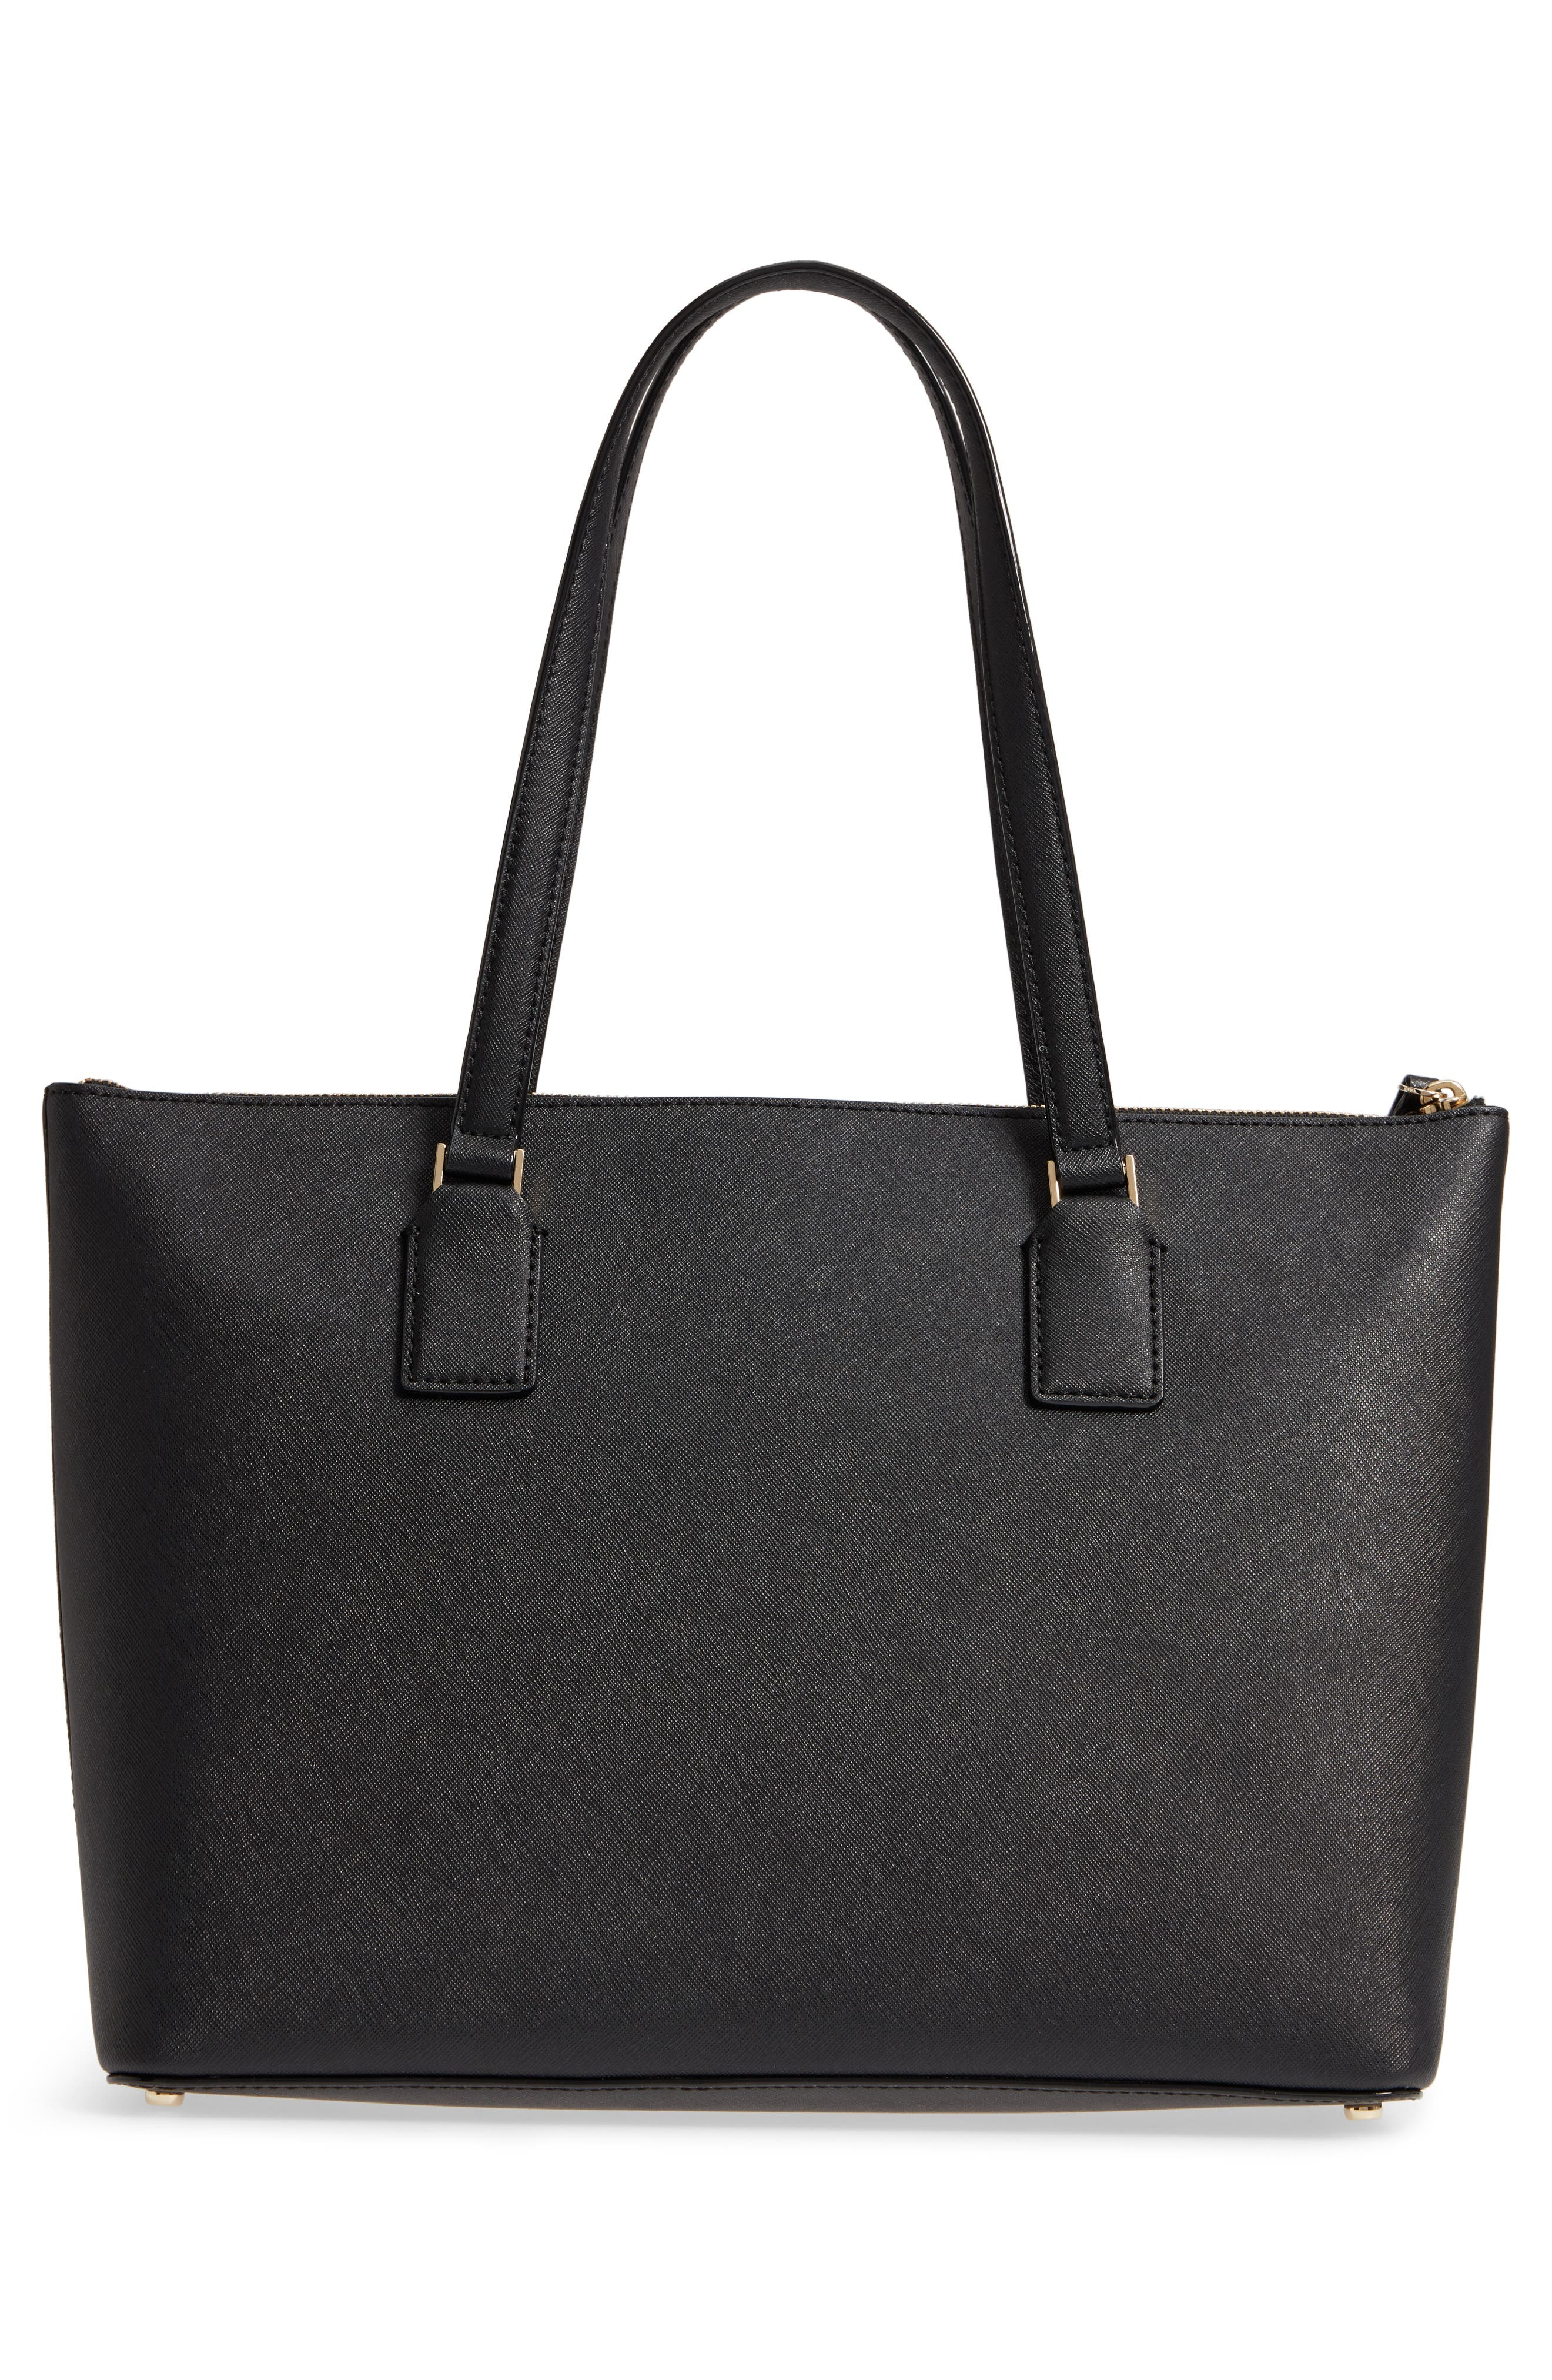 cameron street – audrey leather laptop tote,                             Alternate thumbnail 3, color,                             BLACK